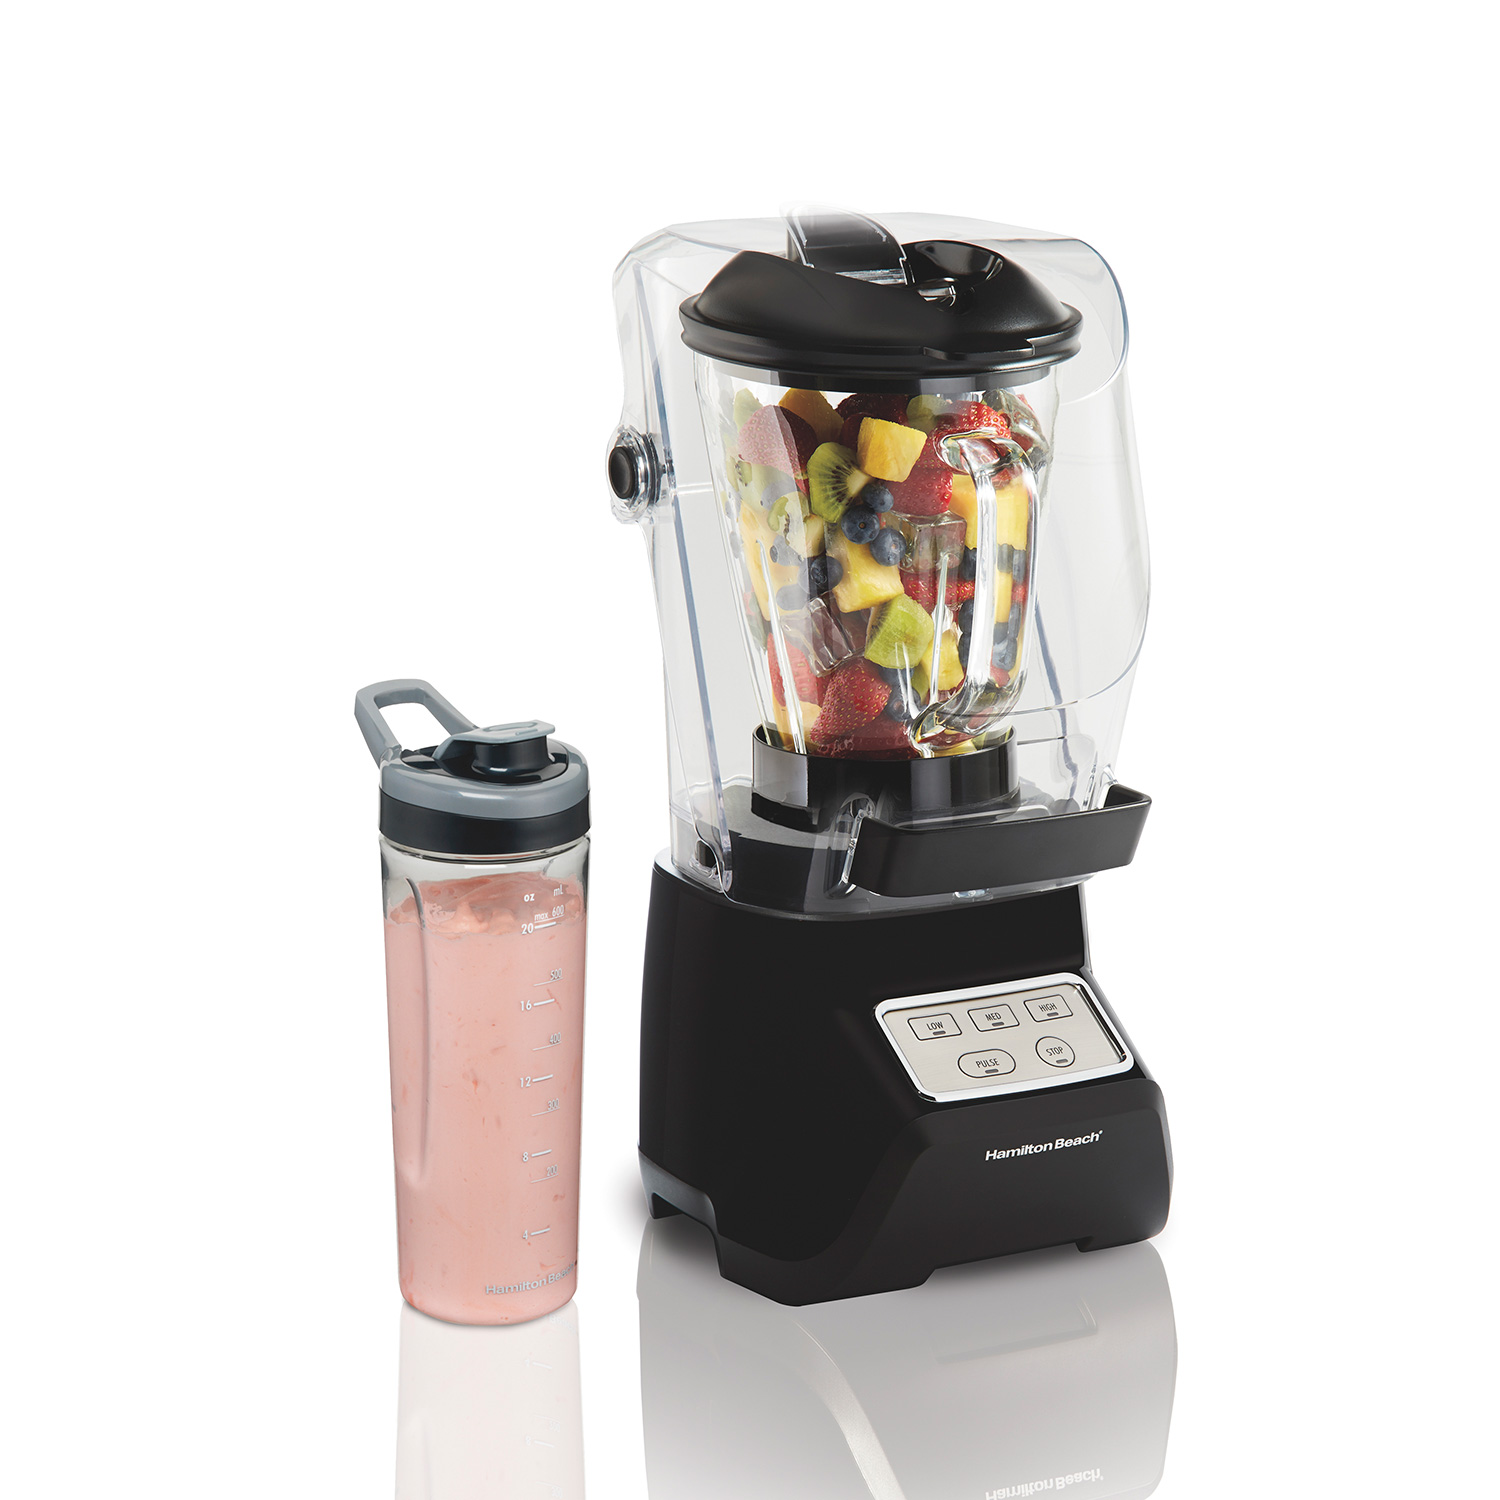 Sound Shield 950 Blender with Personal Jar (53603)